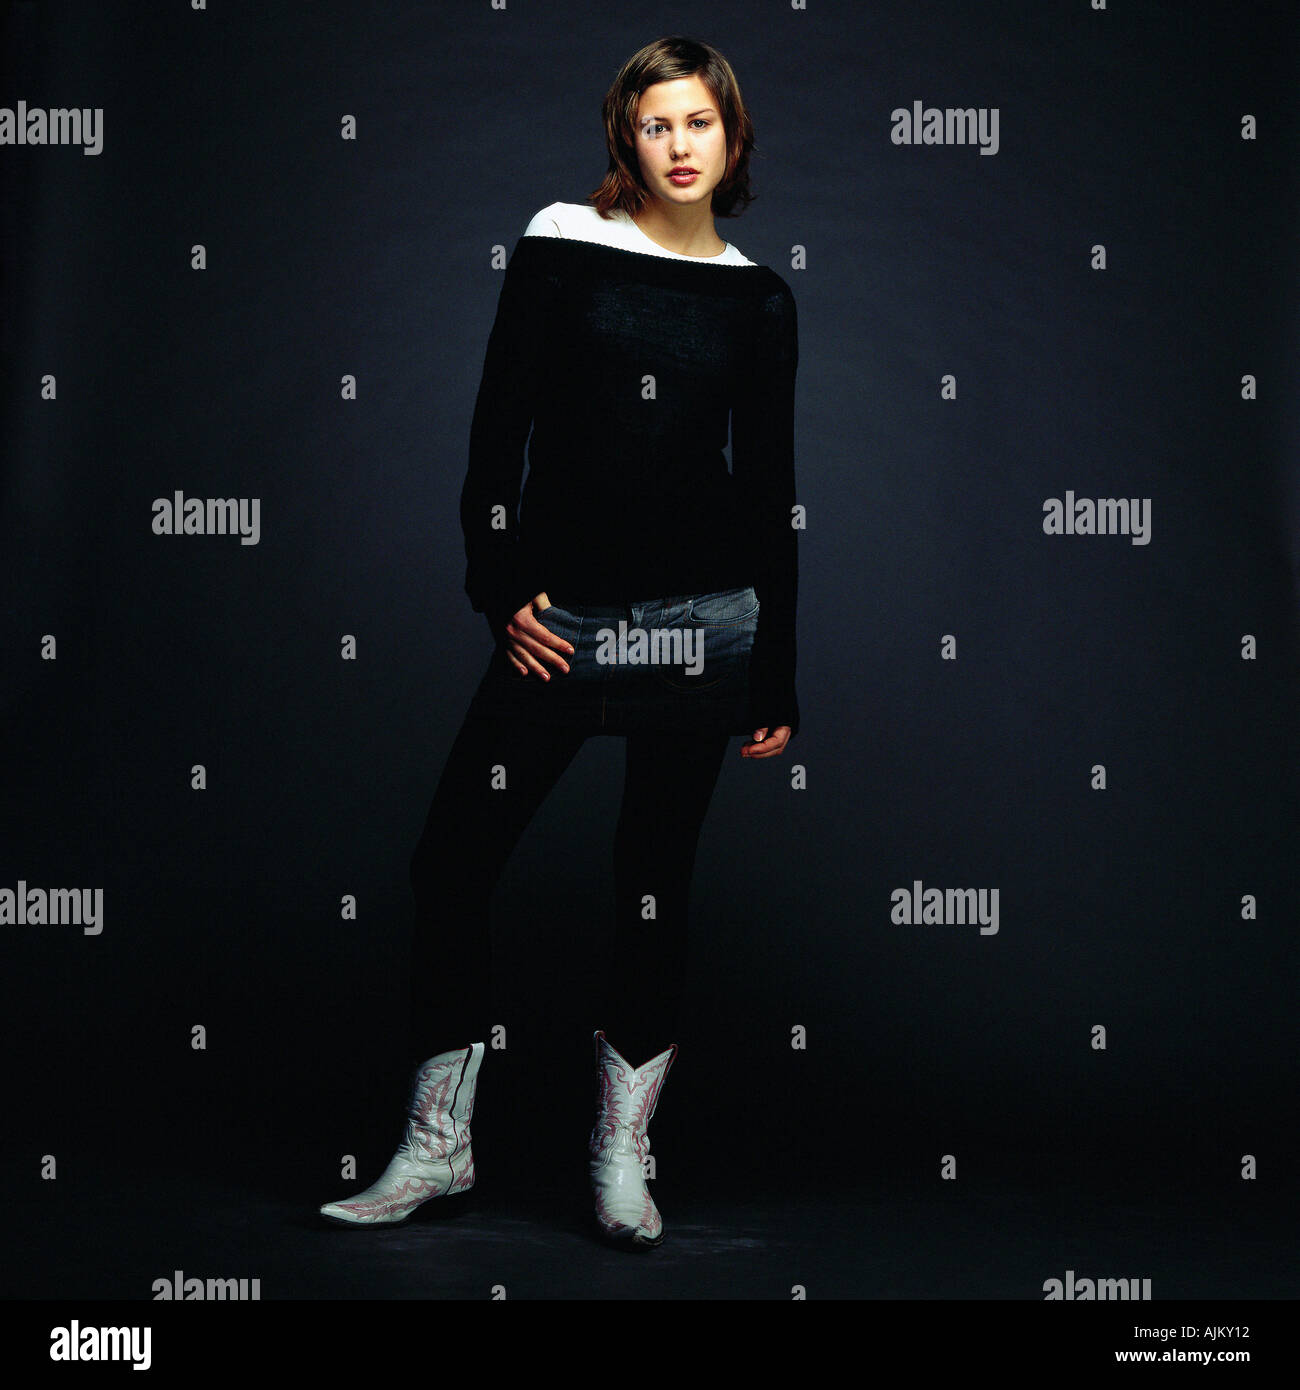 Cowboy Boots Stock Photos & Cowboy Boots Stock Images - Alamy